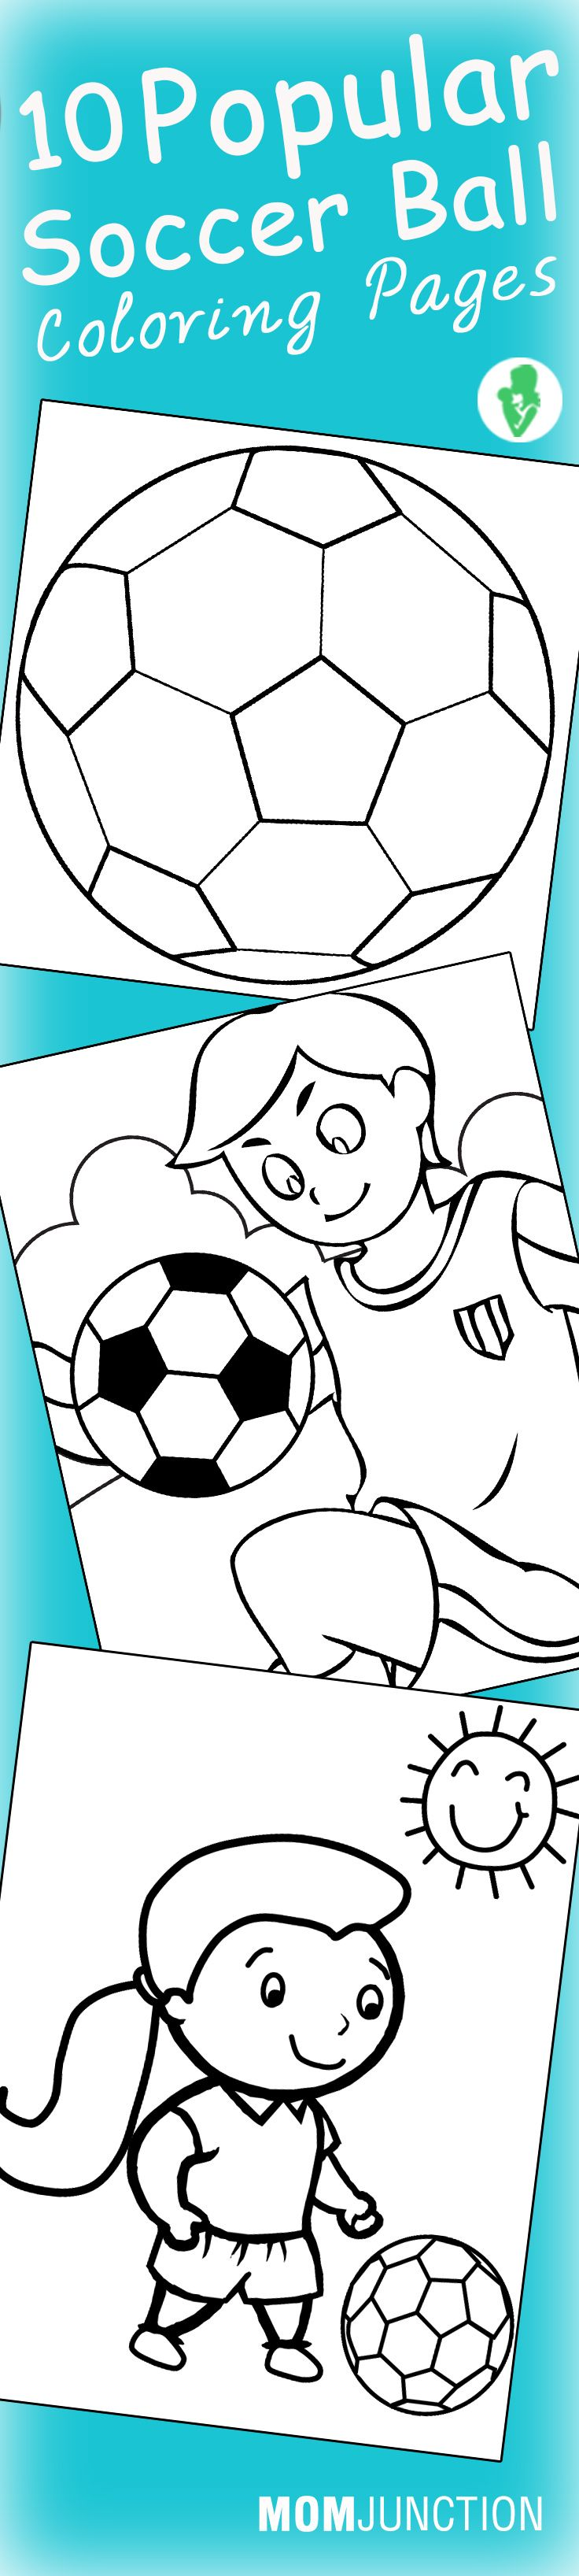 soccer ball coloring pages free printables soccer ball lovers and sport craft. Black Bedroom Furniture Sets. Home Design Ideas